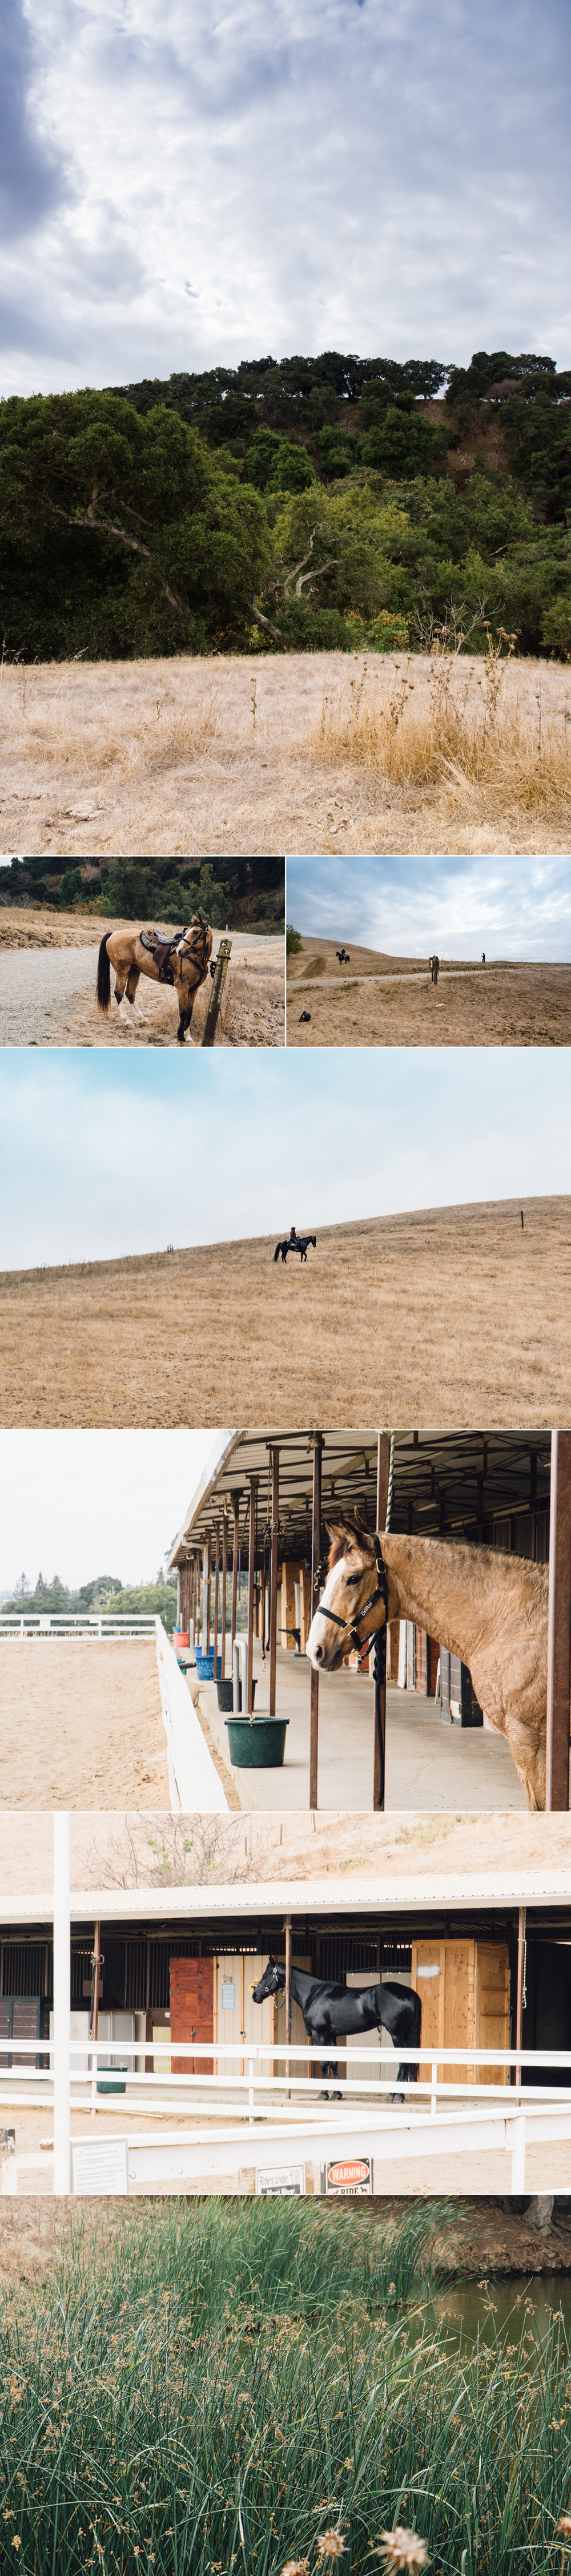 Horse and Drone-0830.png